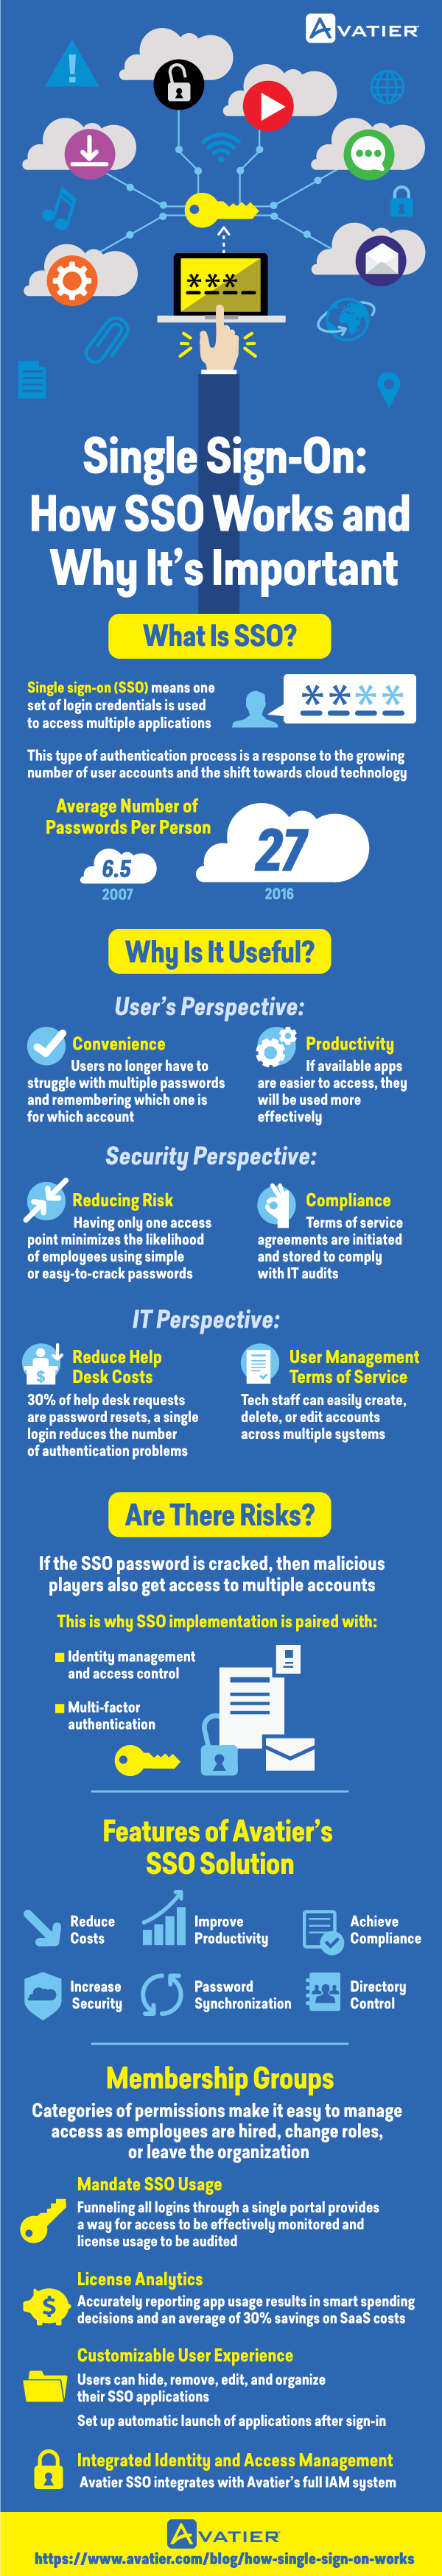 Home Office Productivity: What You Need to Know Today [Infographic]